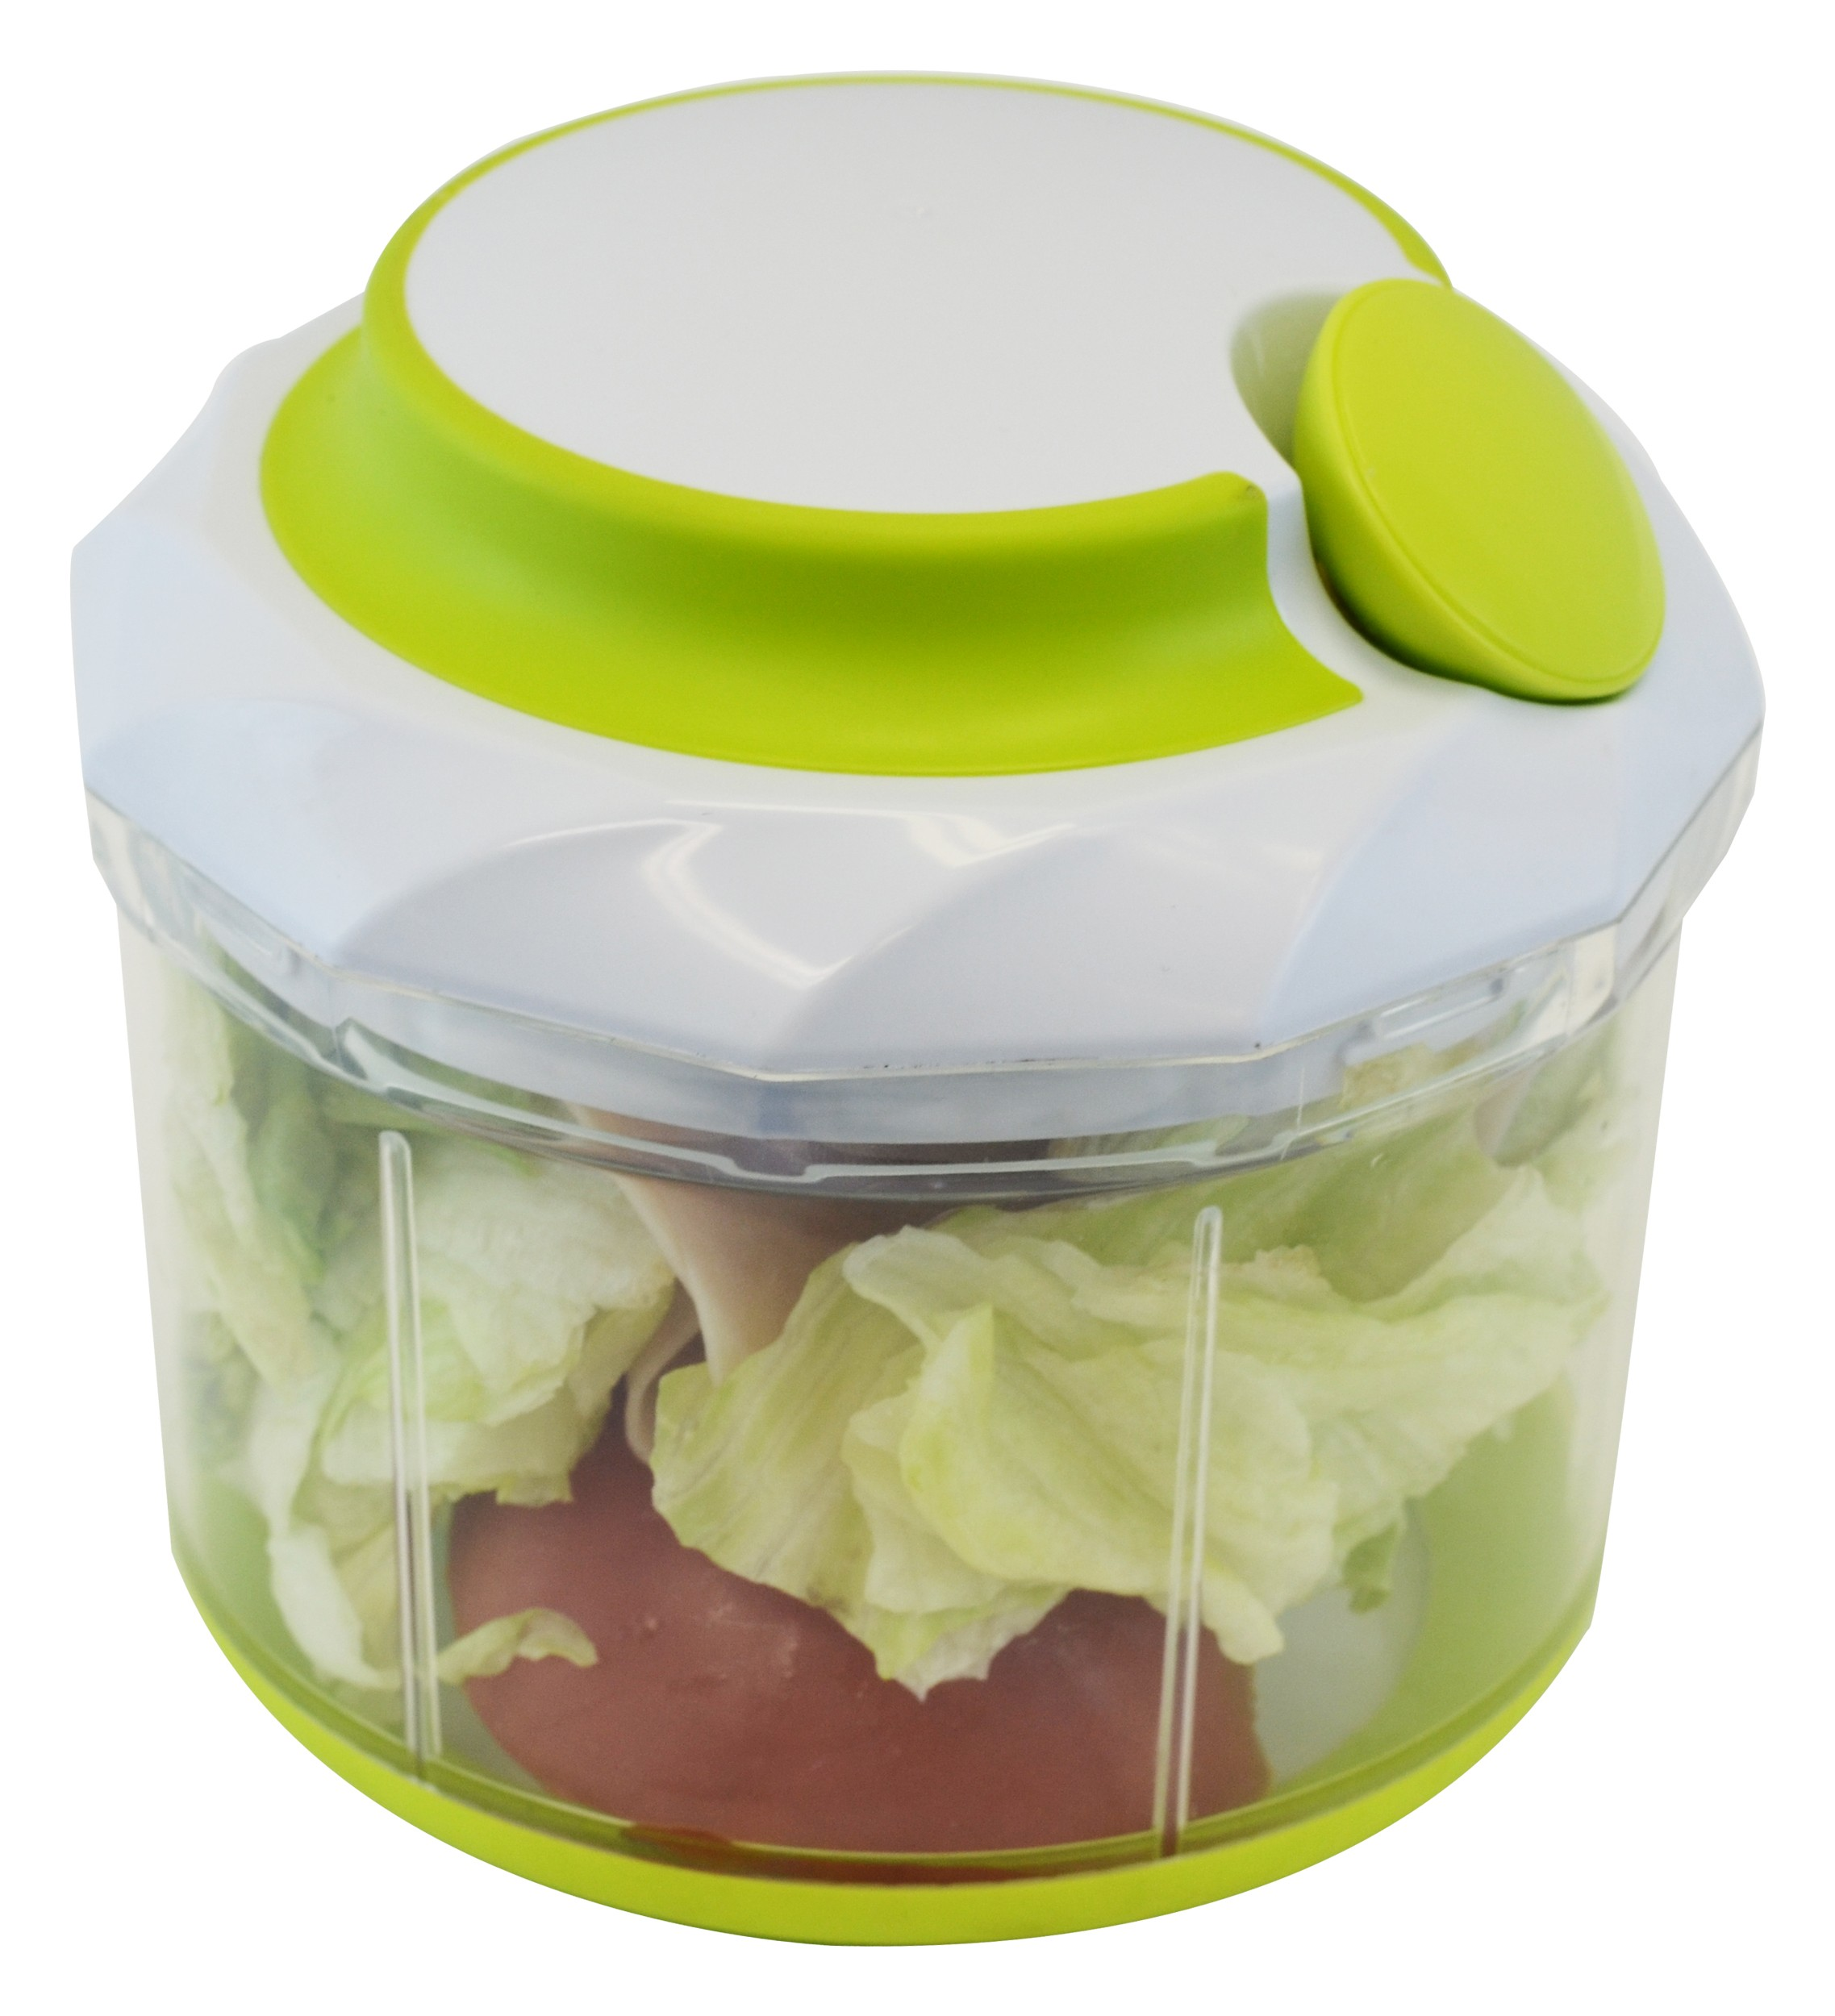 Manual Handheld Food Chopper, Large